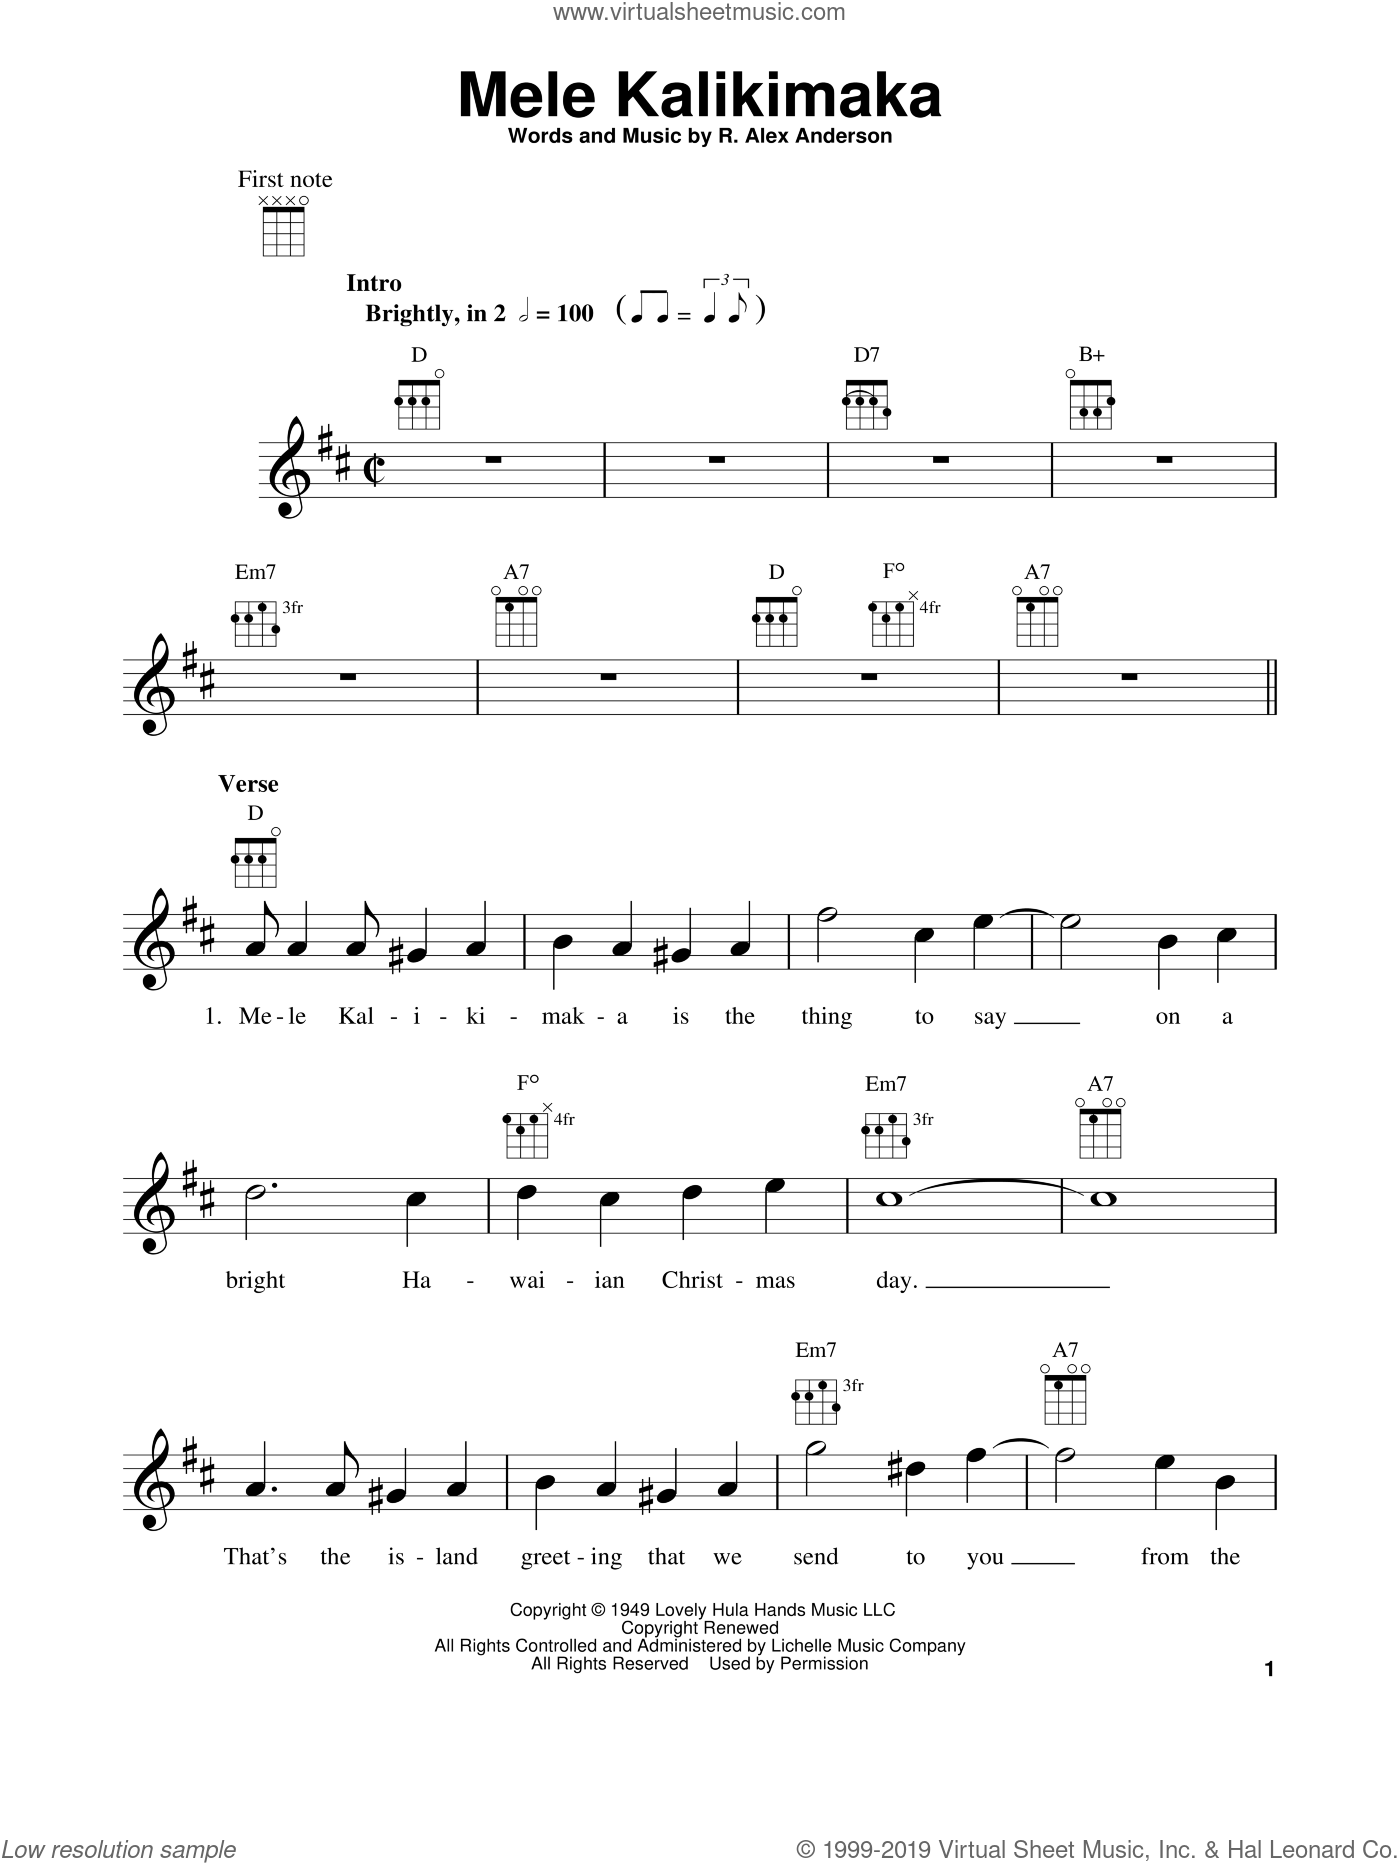 Mele Kalikimaka sheet music for ukulele by Bing Crosby and R. Alex Anderson, intermediate skill level